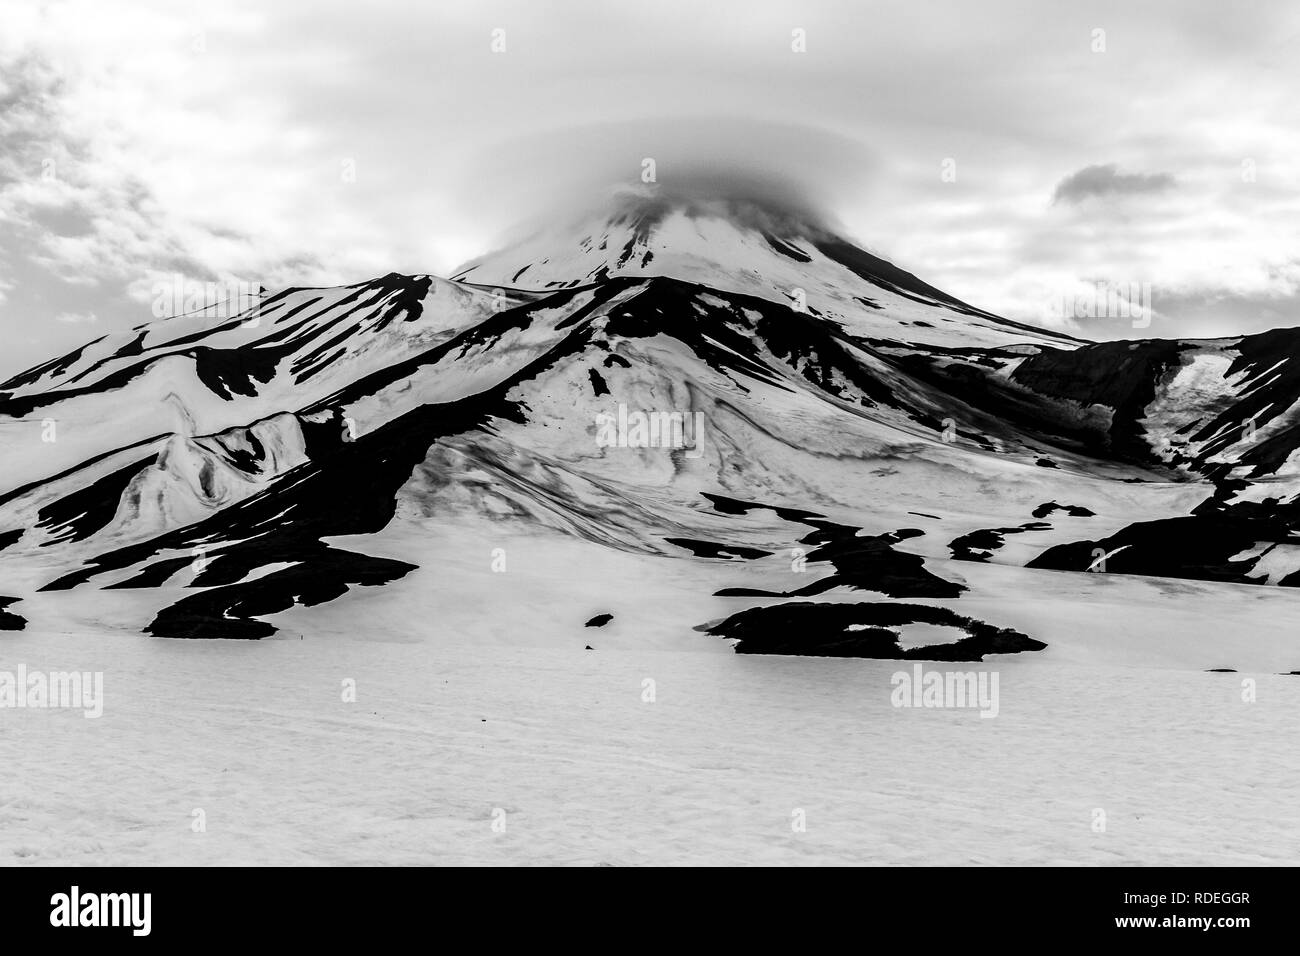 Black and white view of the Avacha Volcano in overcast weather, Kamchatka Peninsula, Russia - Stock Image